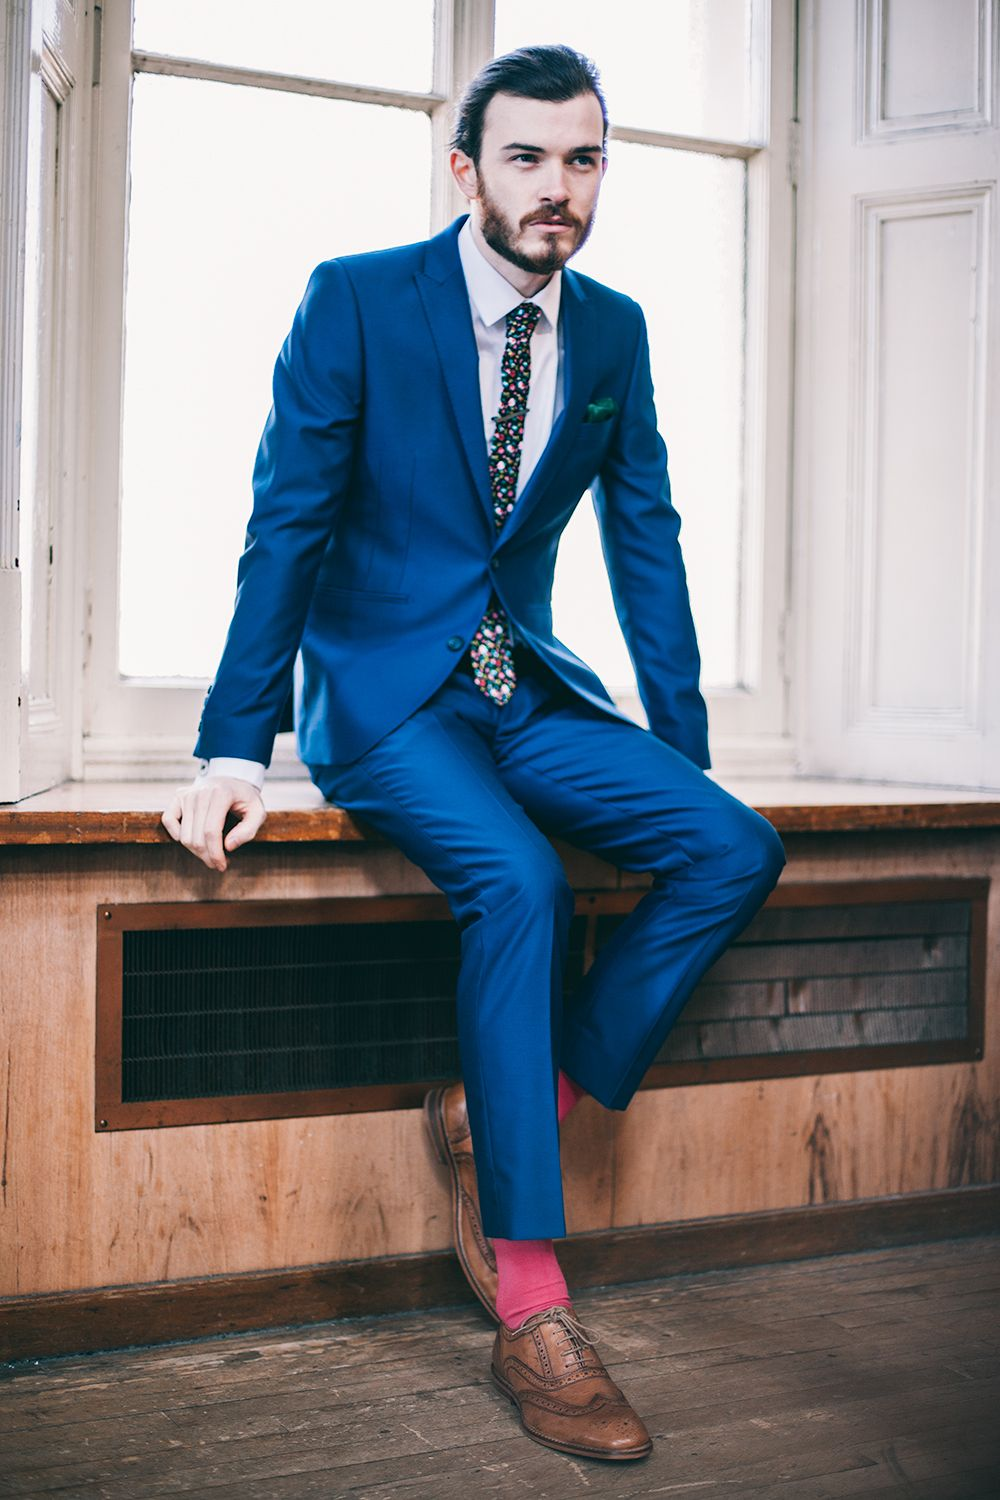 flash a pink sock with your blue suit slaters ss15 collection  flash a pink sock with your blue suit slaters ss15 collection menswear style menswear details